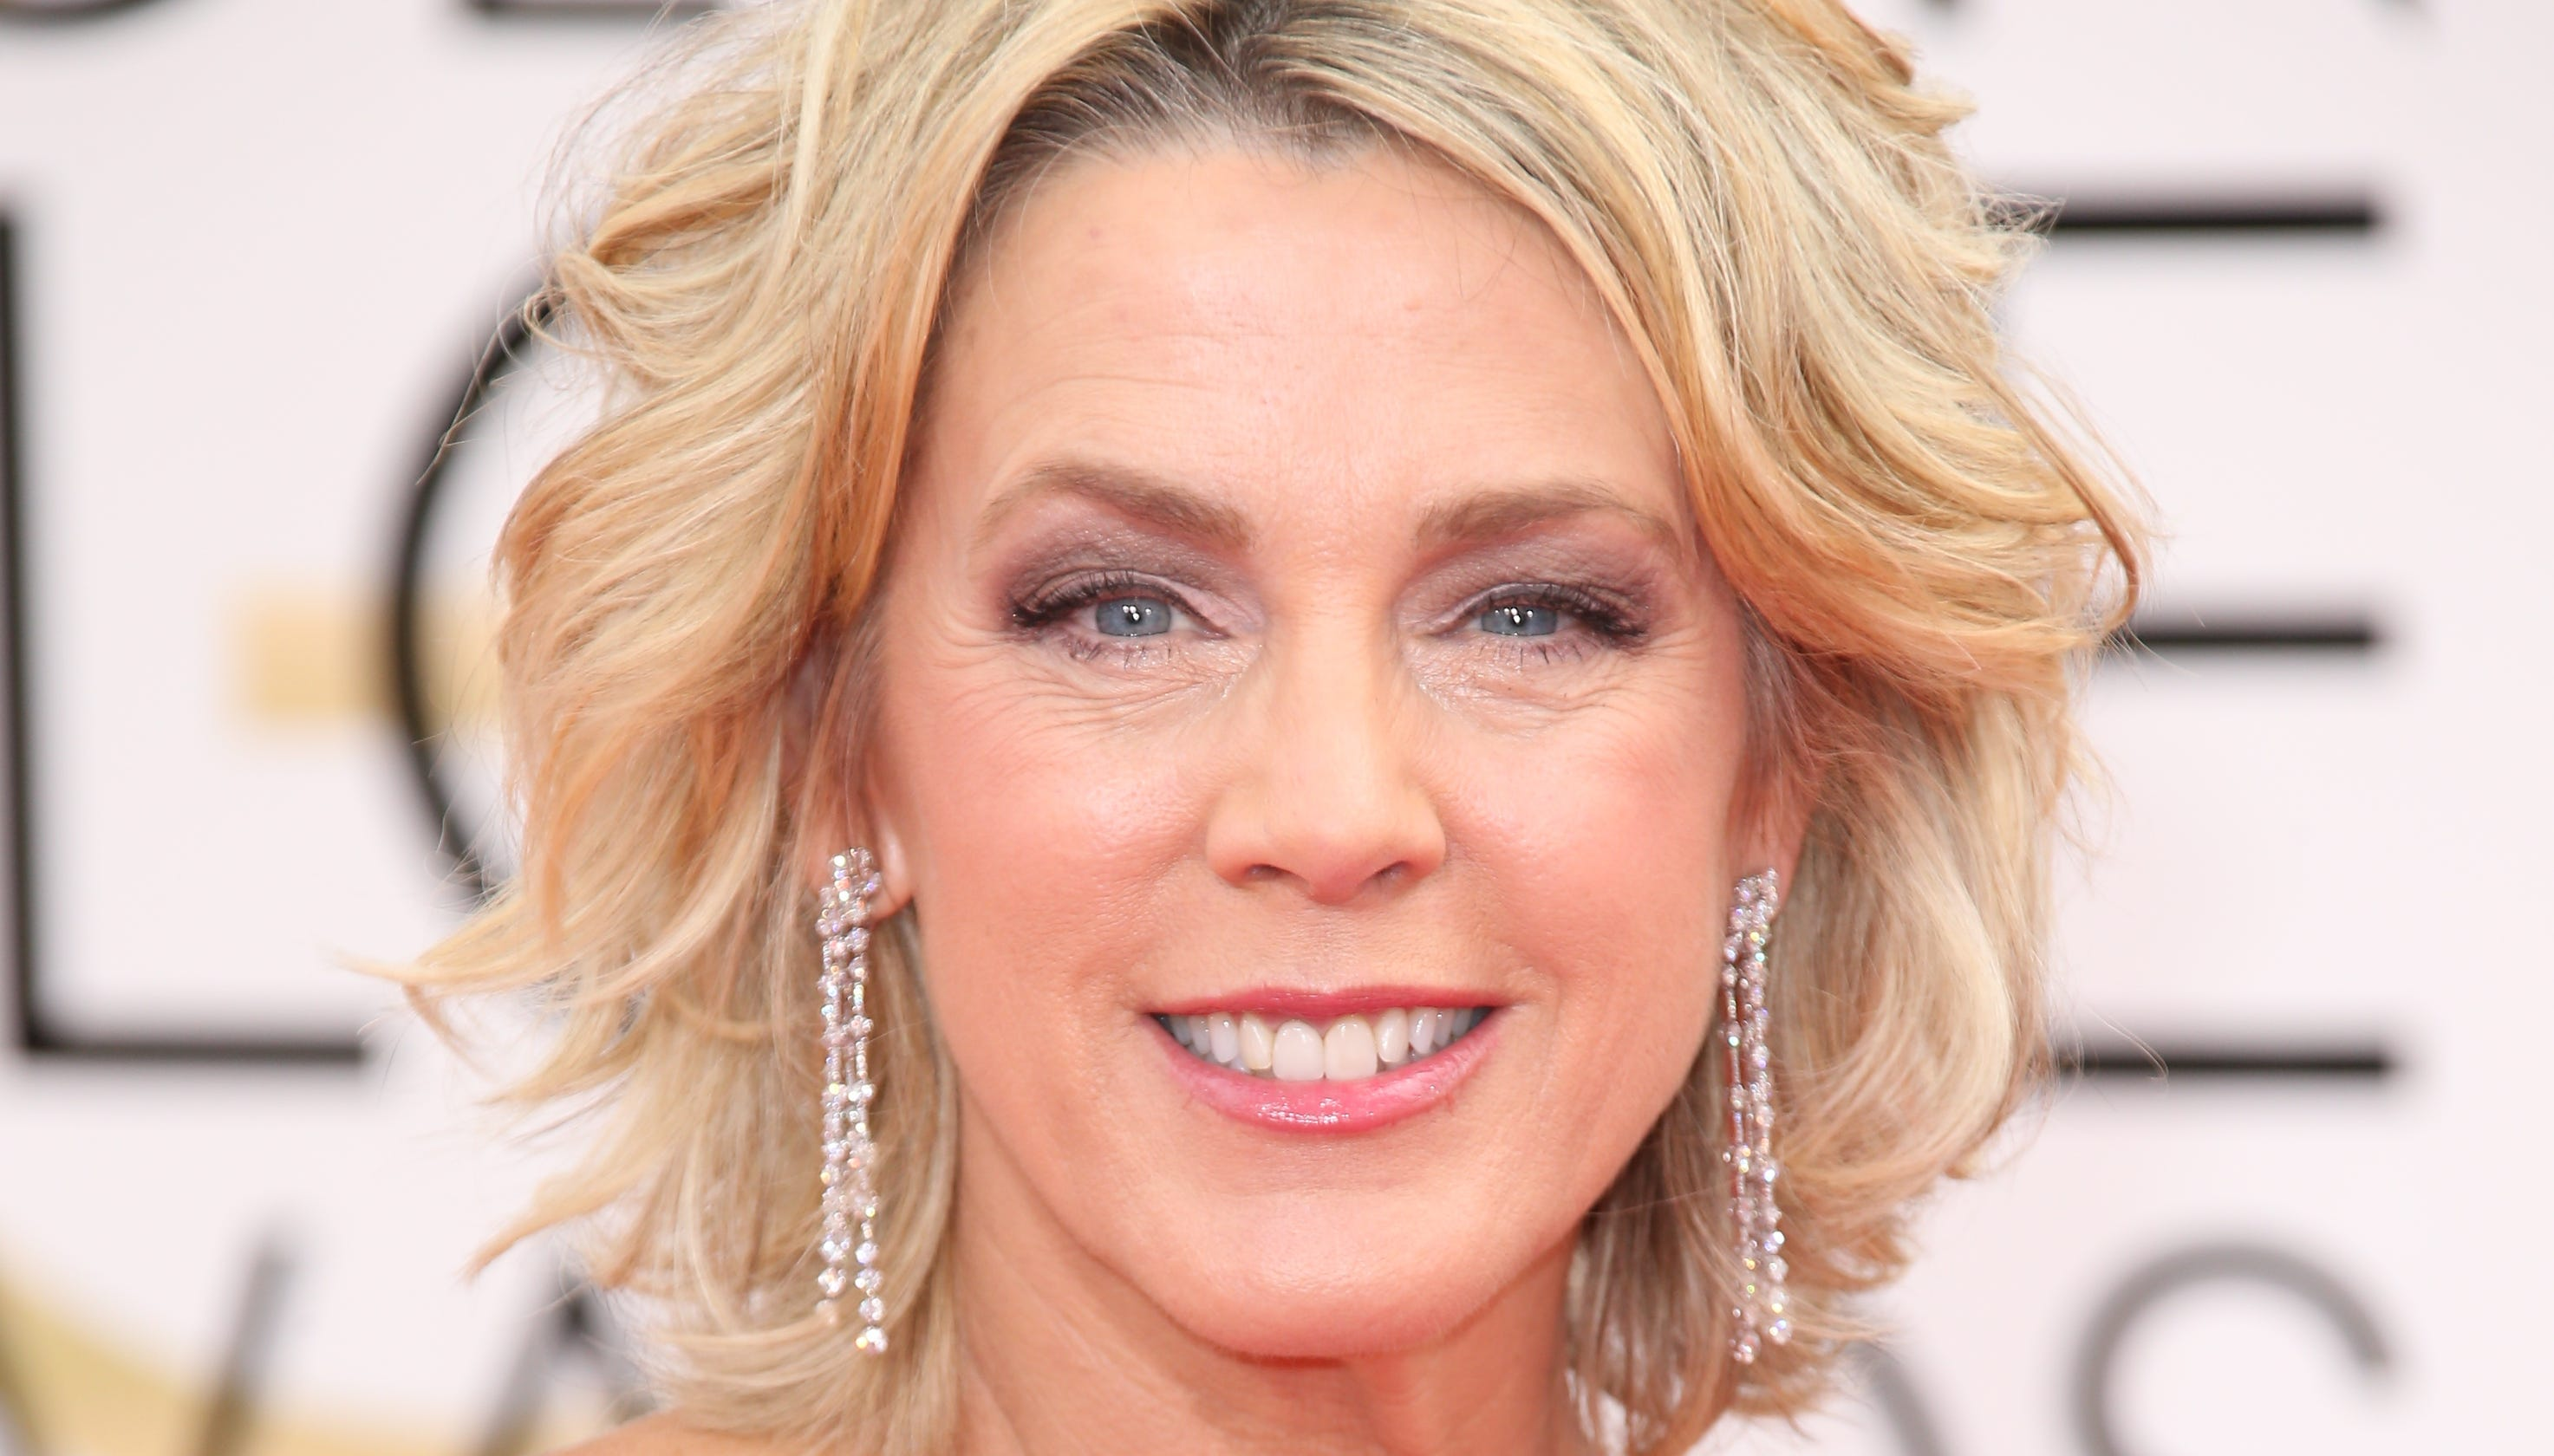 thyroid cancer: how to spot it after deborah norville shares